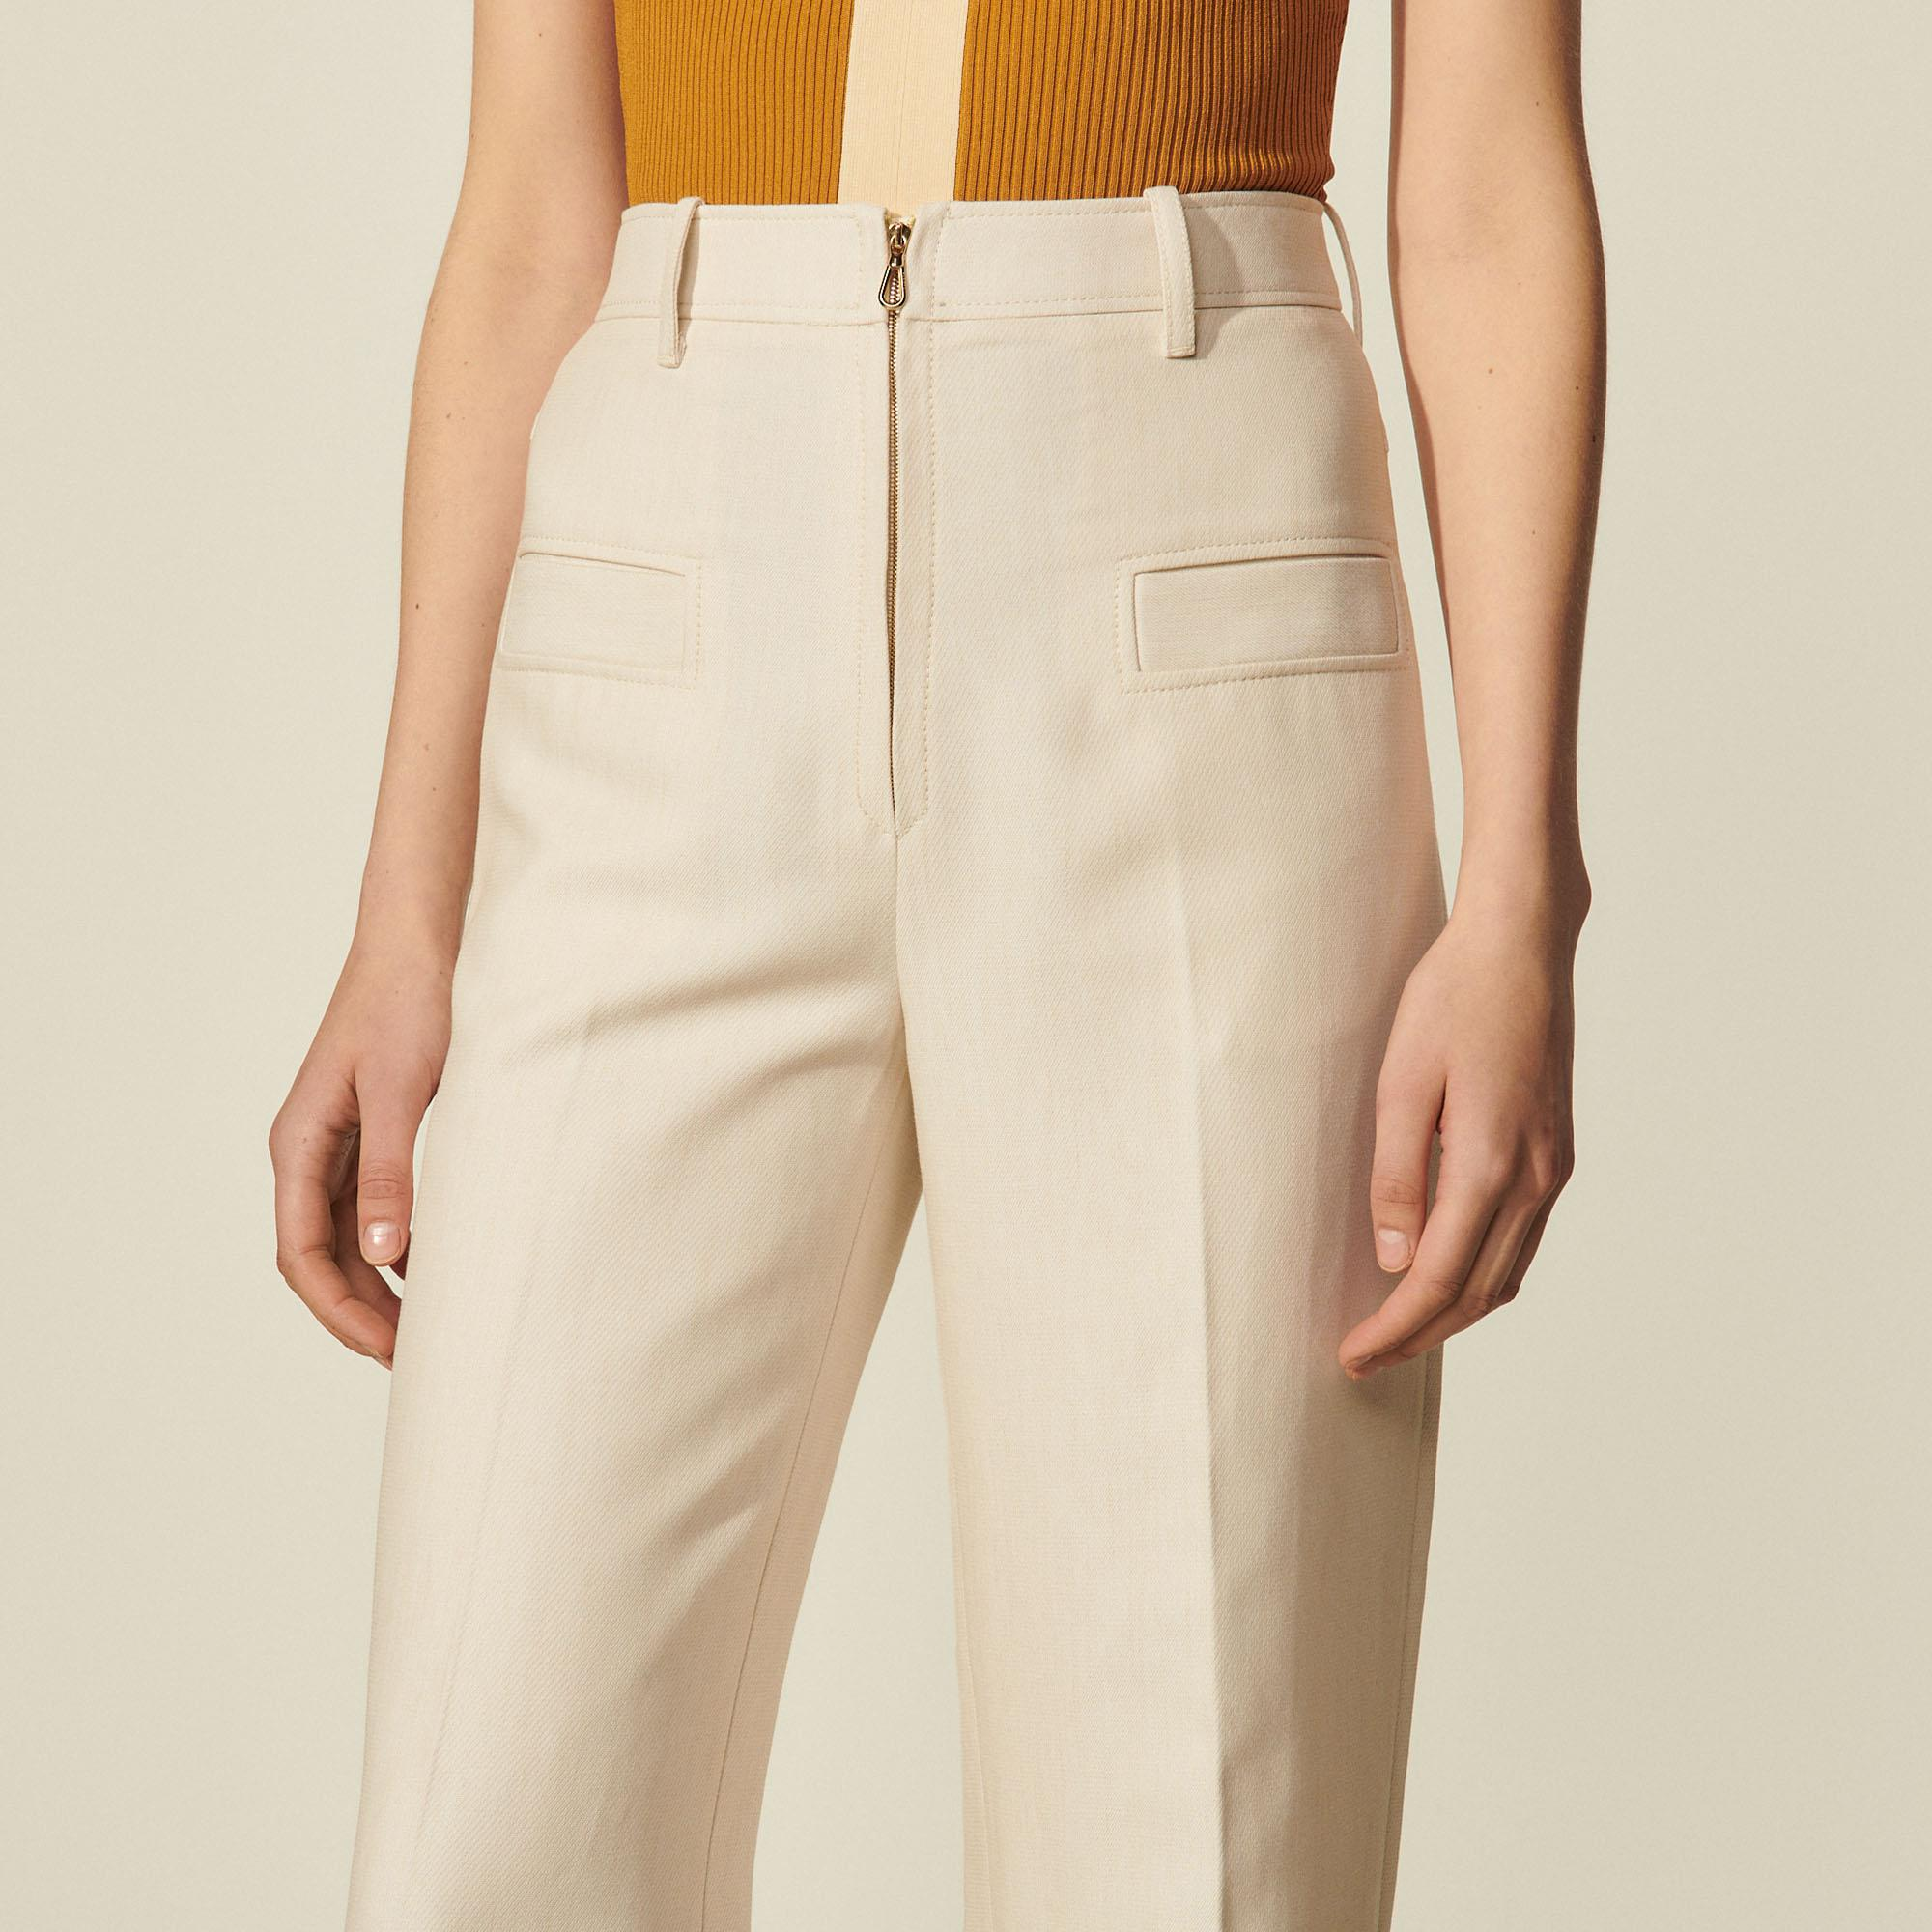 Pants with center front zip 4